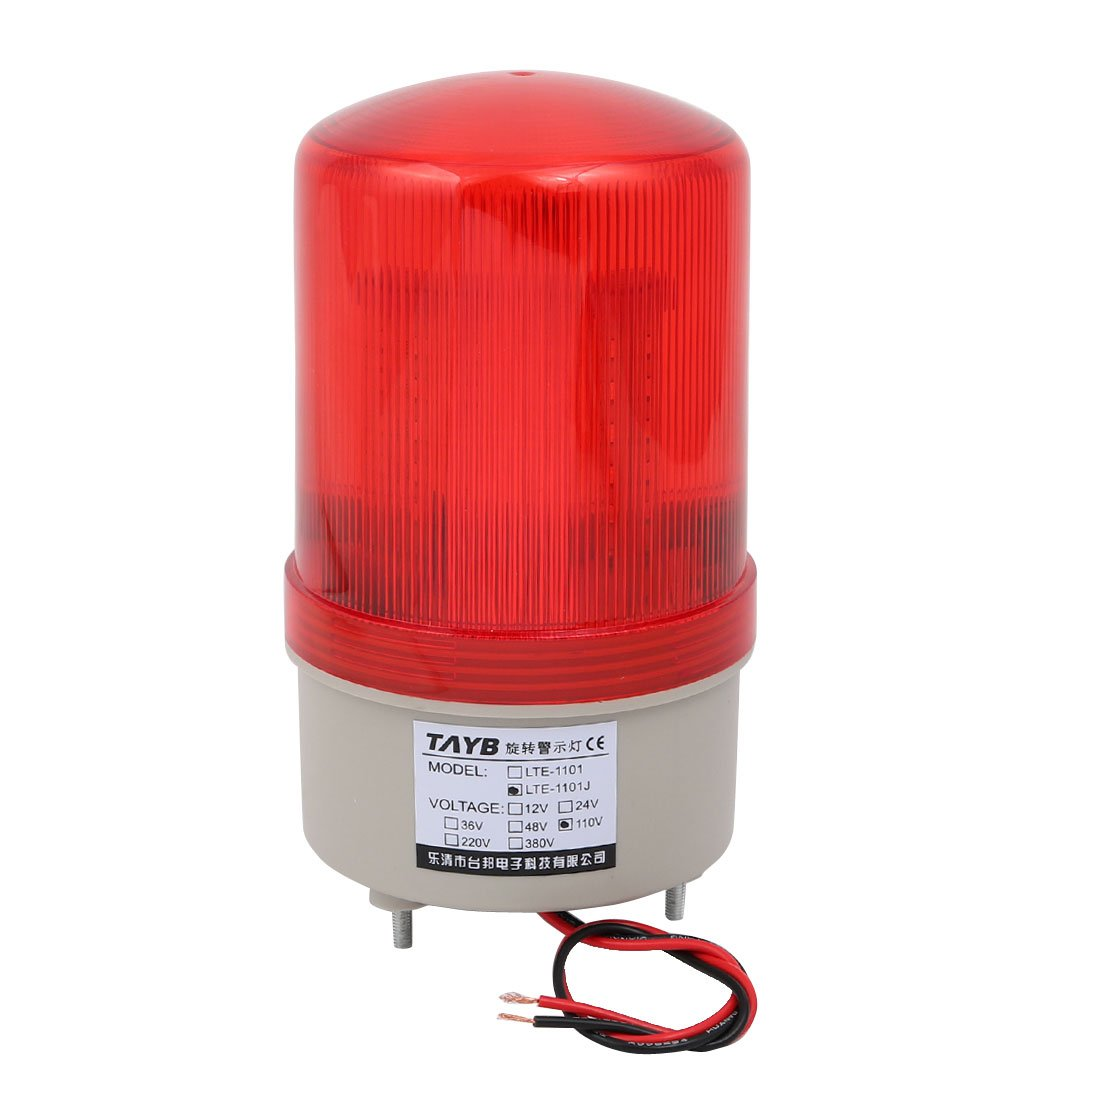 uxcell Industrial 105-110dB Buzzer Siren AC 110V Red LED Warning Light Signal Tower Lamp a14052600ux0781